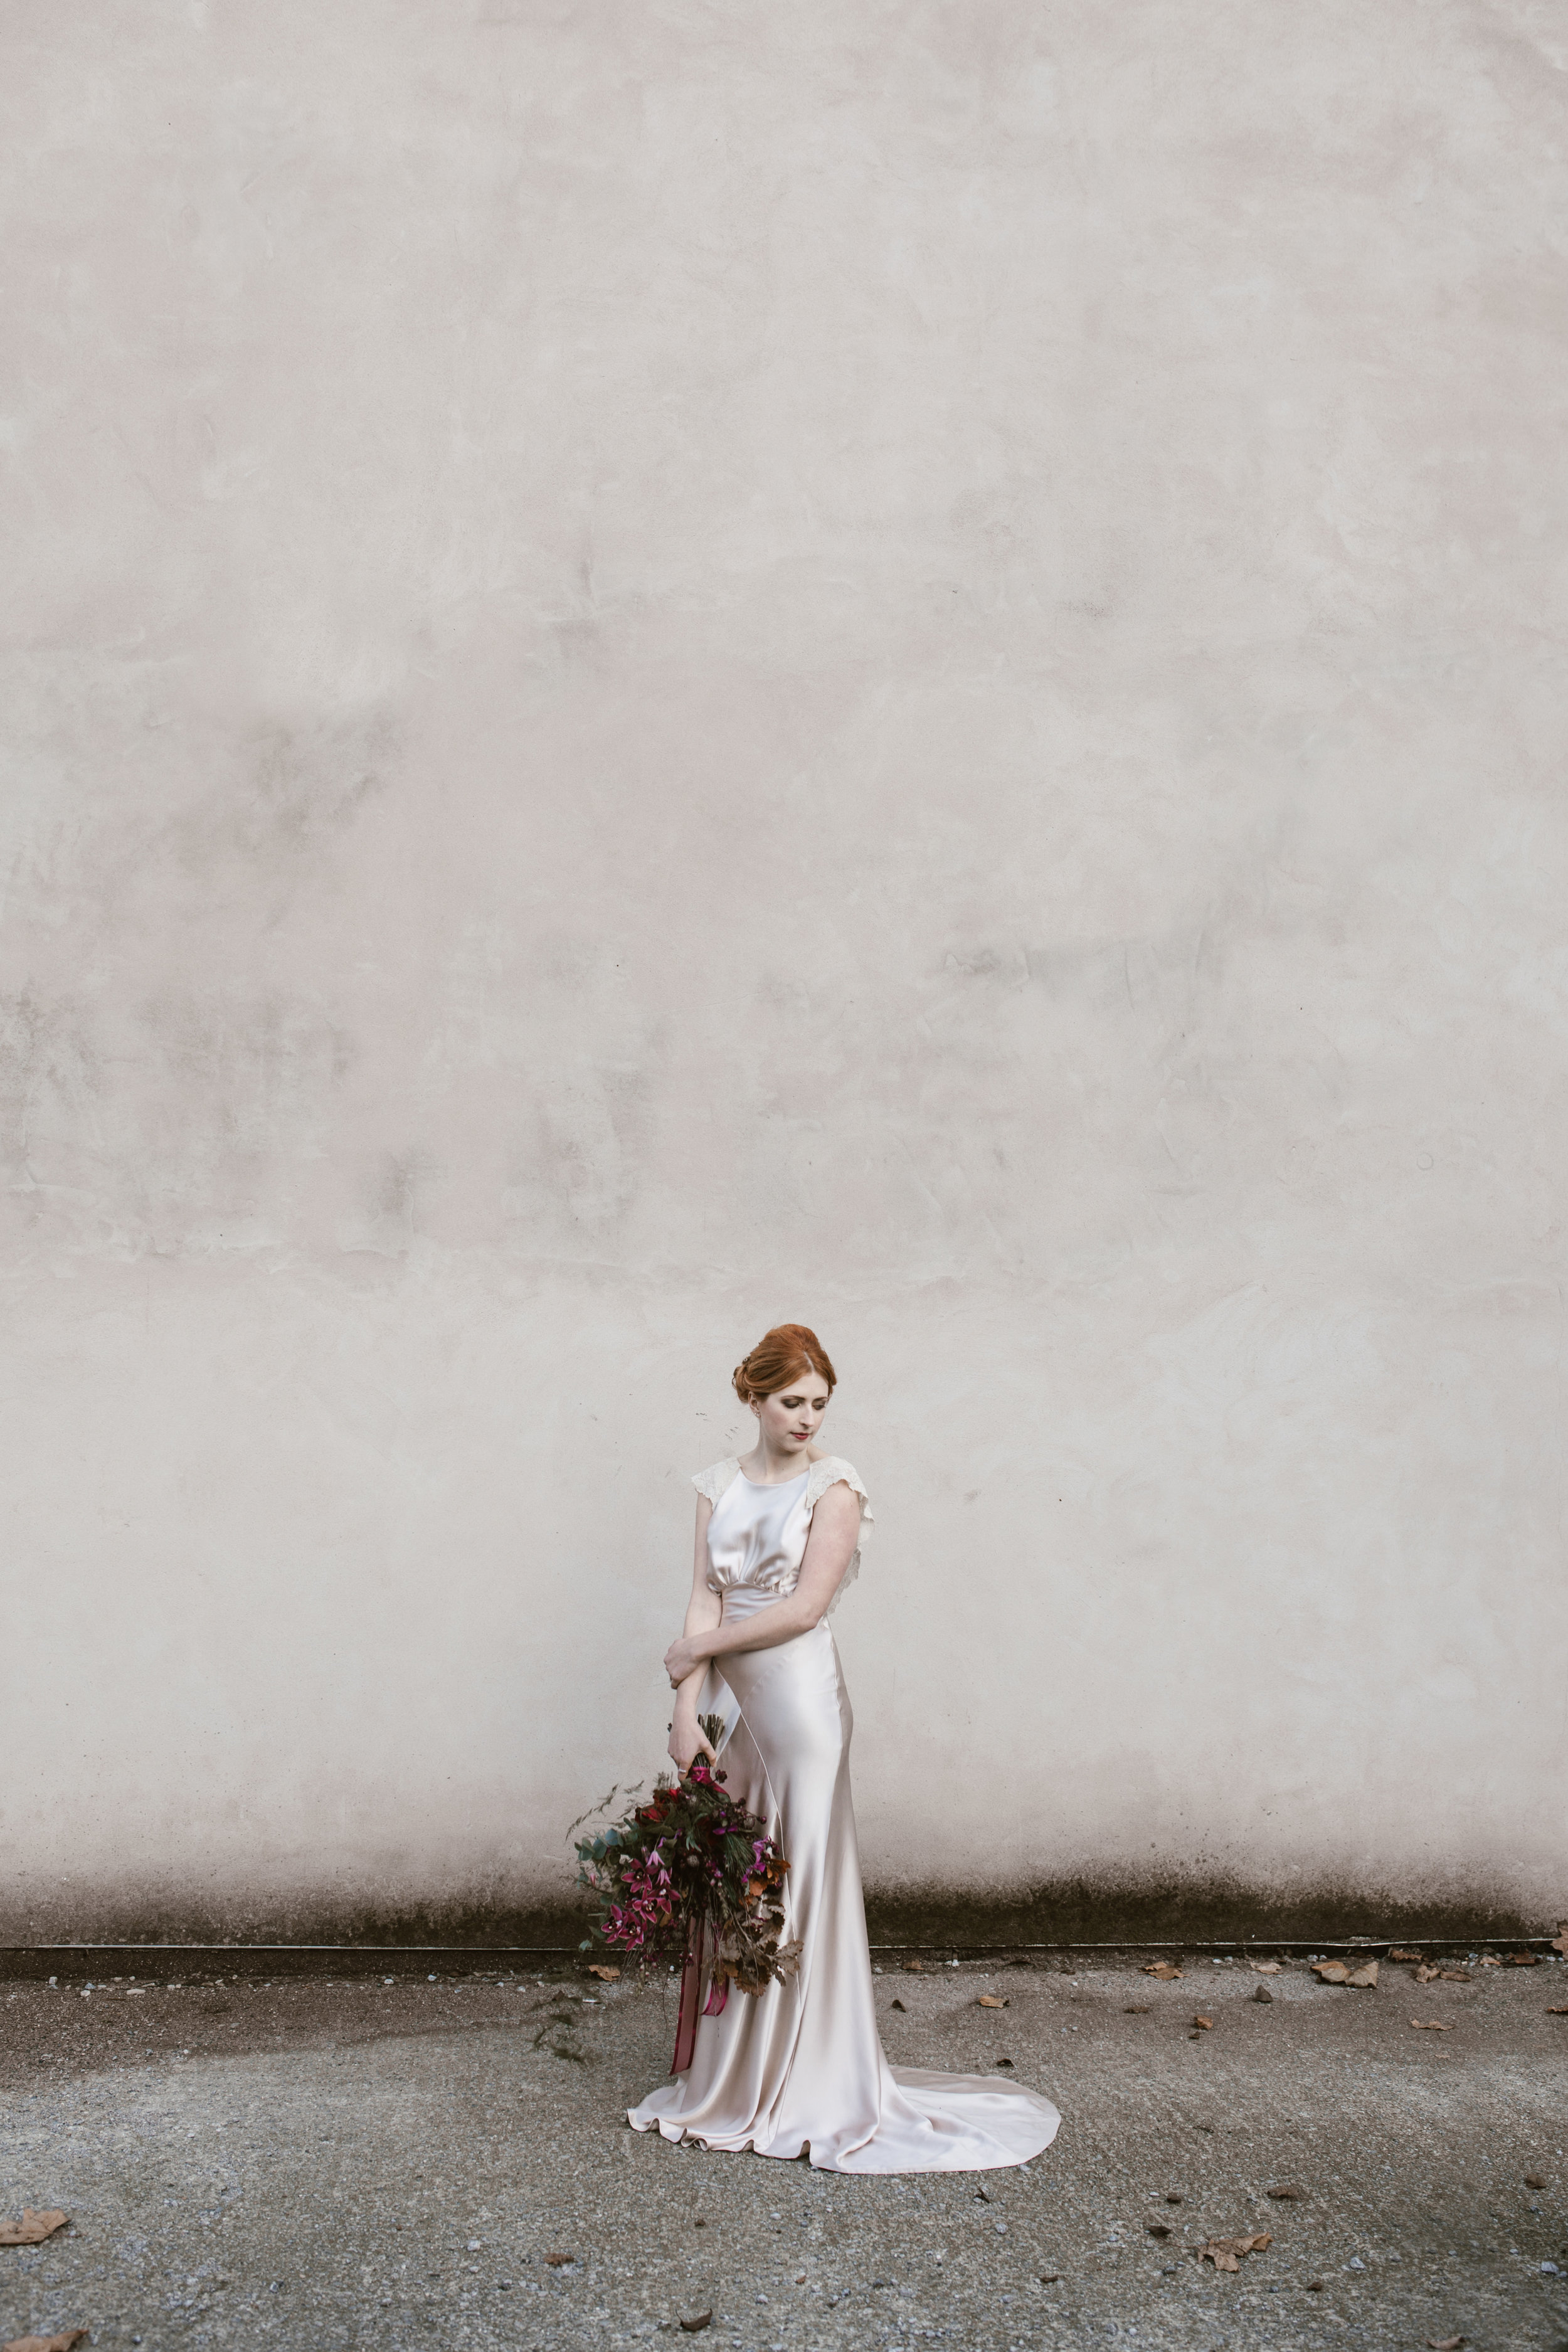 red headed bride stands against a concrete wall looking incredible holding red wild flowers